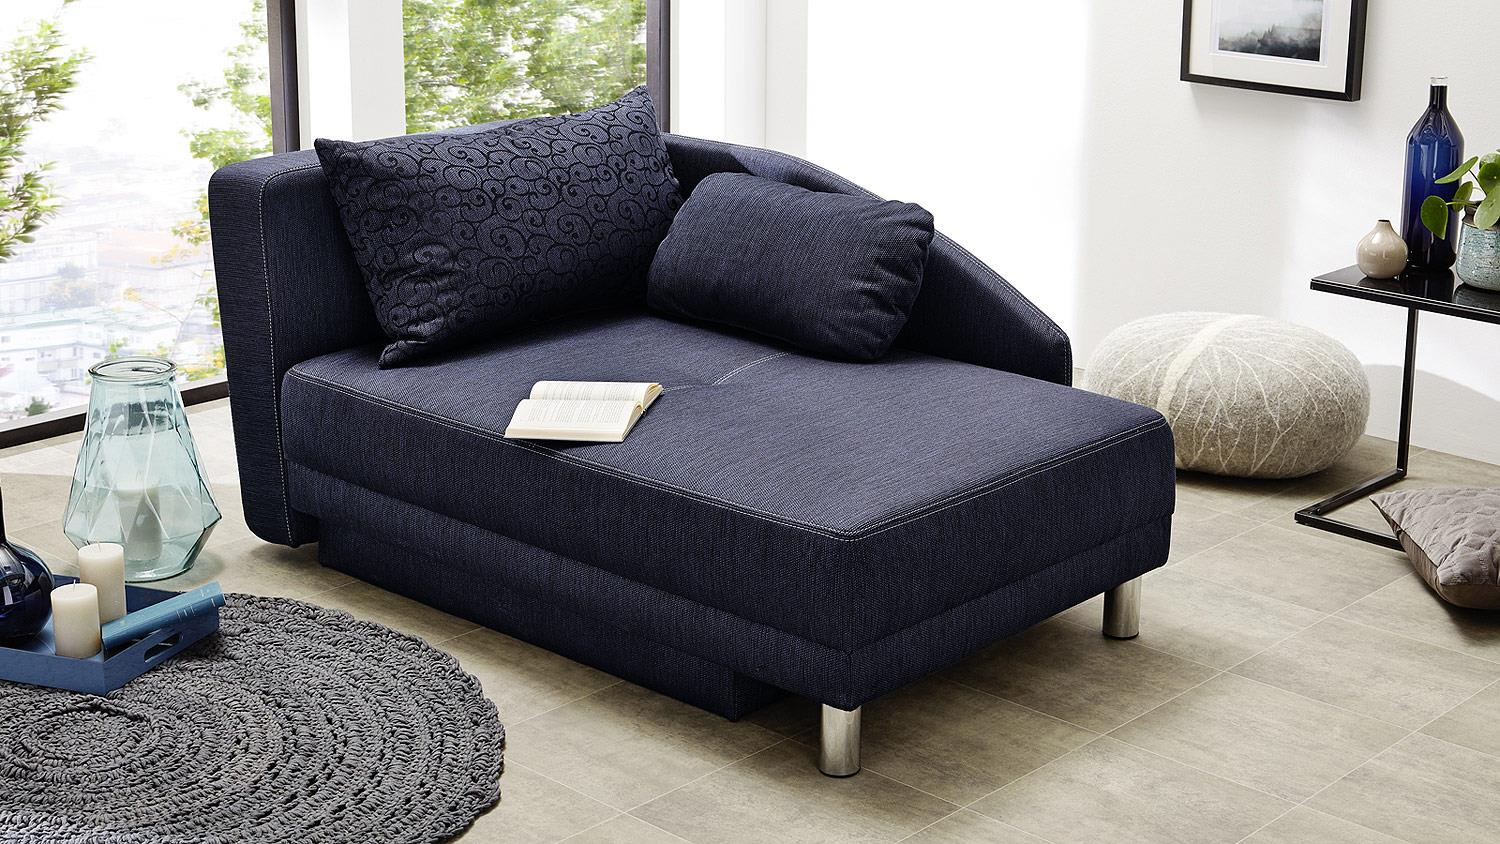 recamiere roy sofa funktionssofa dunkel blau schlaffunktion bettkasten. Black Bedroom Furniture Sets. Home Design Ideas